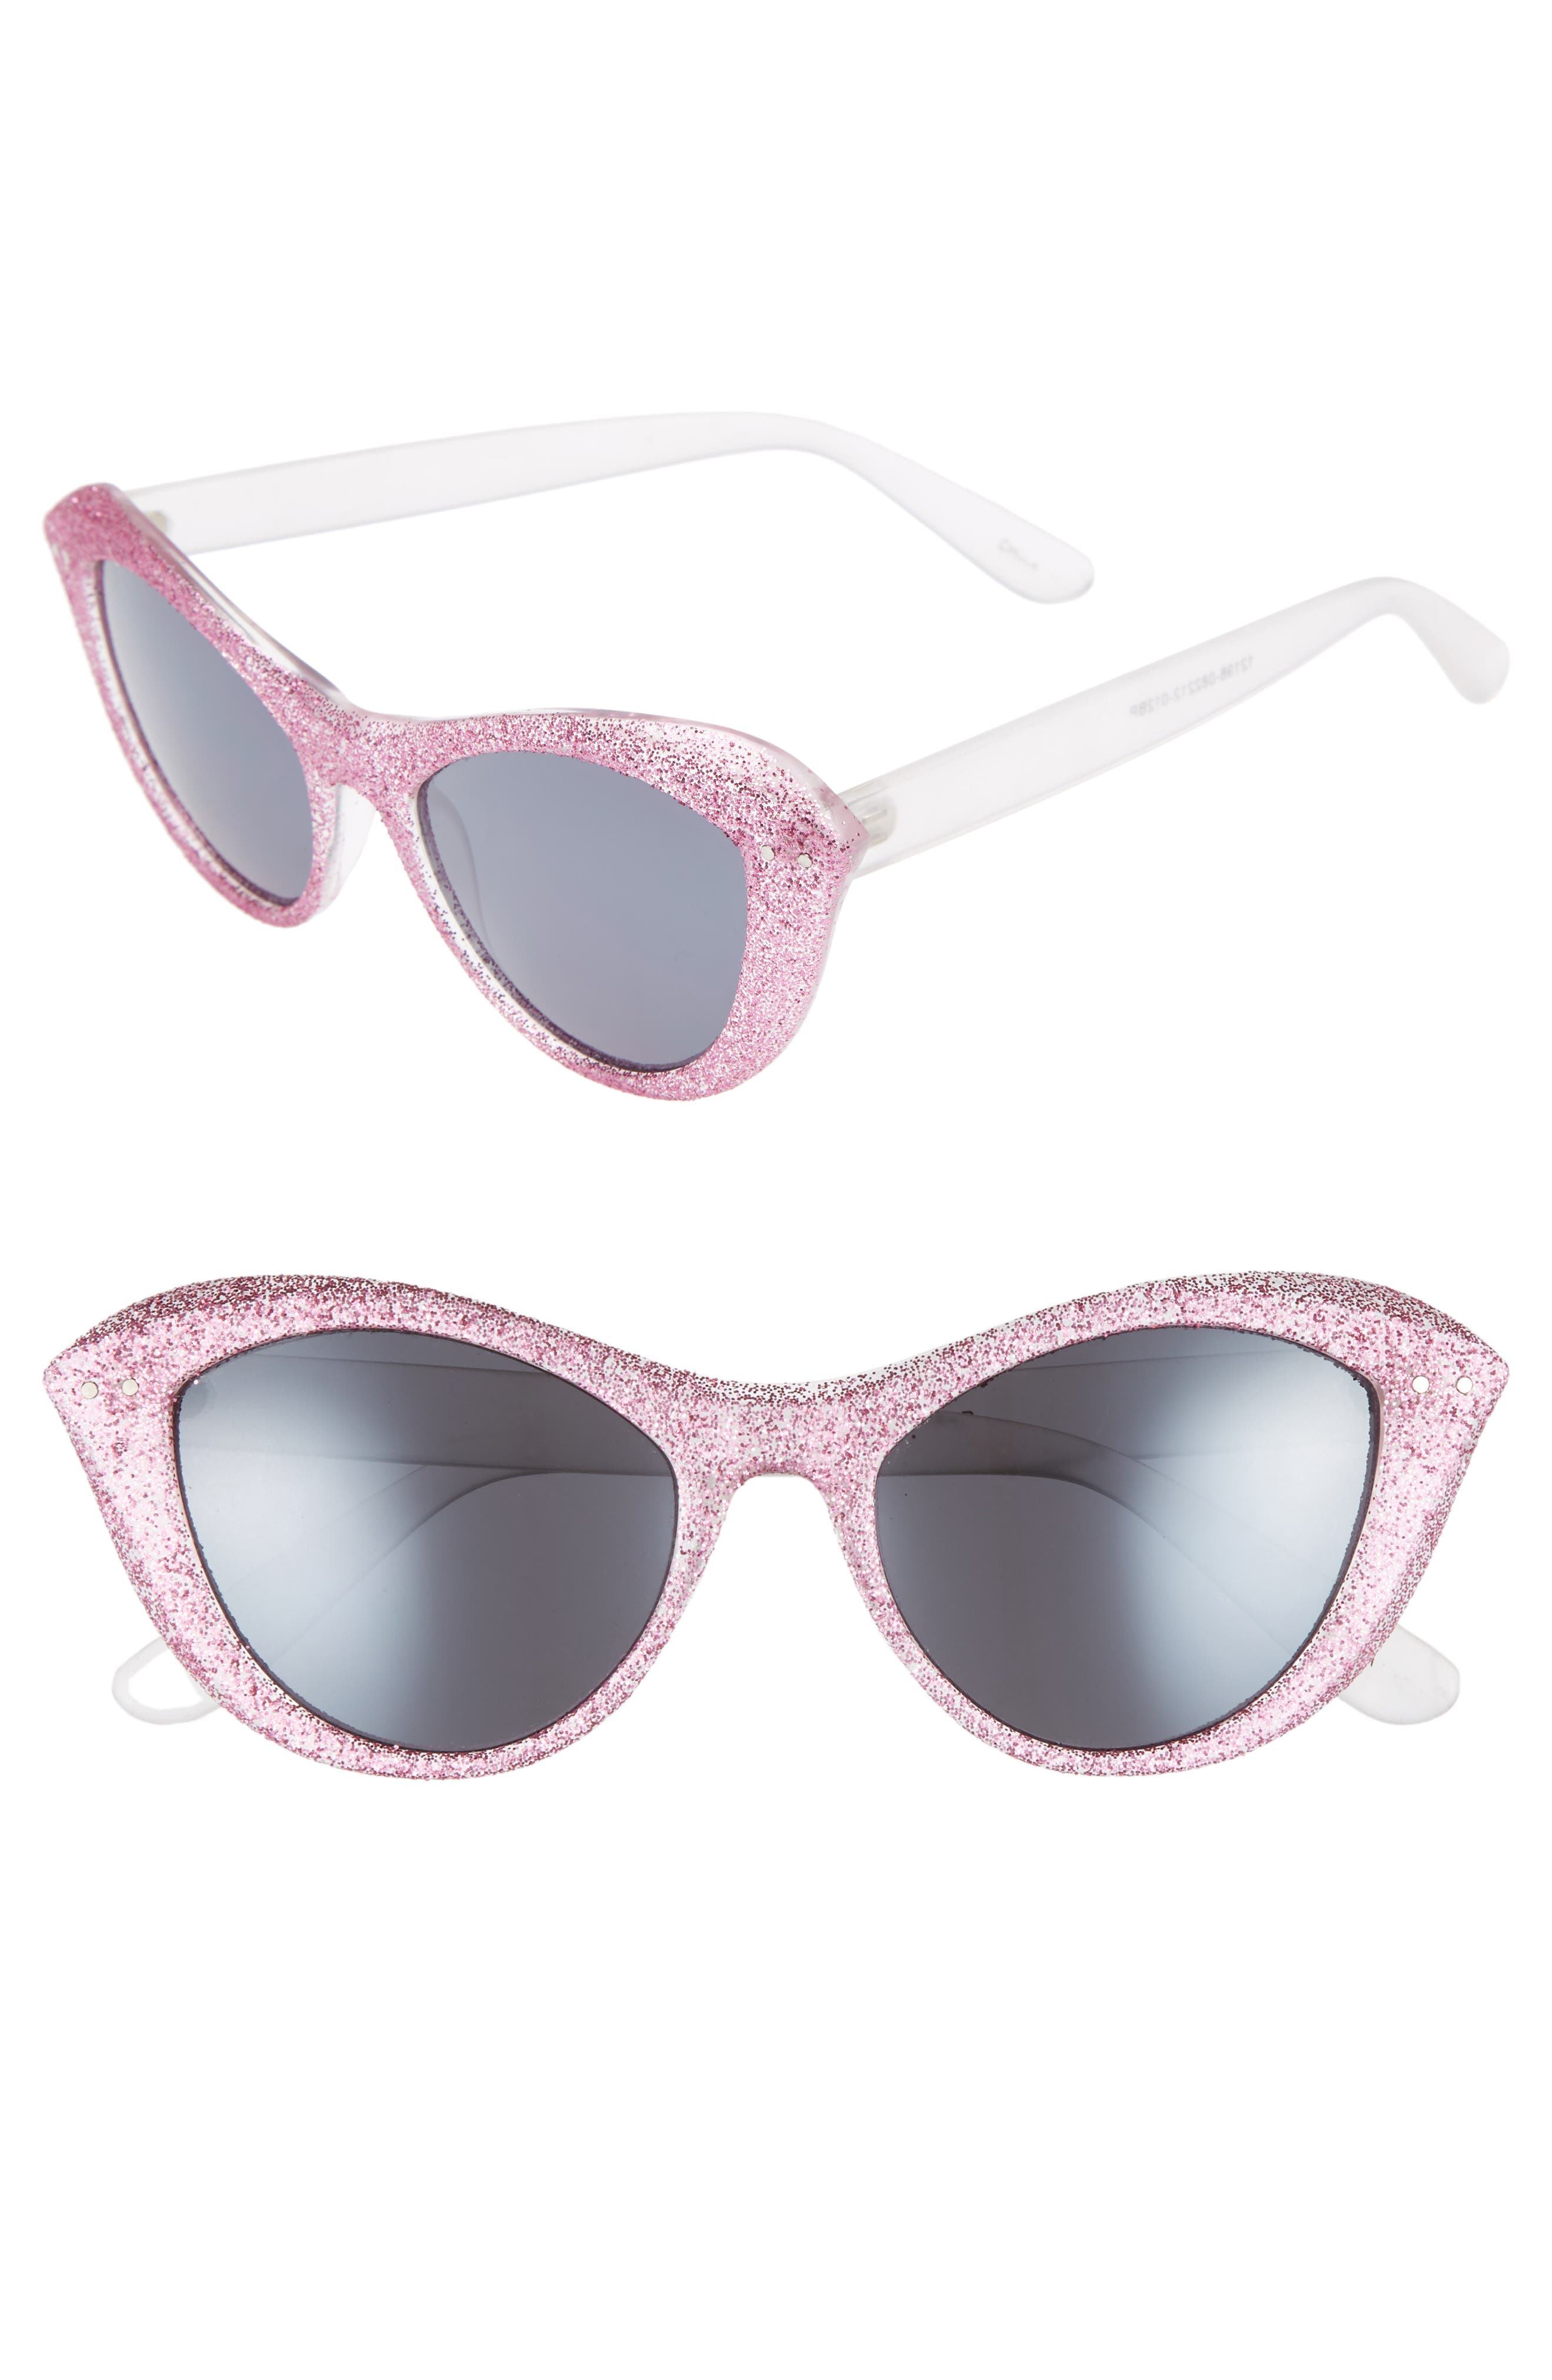 50mm Retro Cat Eye Sunglasses,                             Main thumbnail 1, color,                             Milky White/ Pink